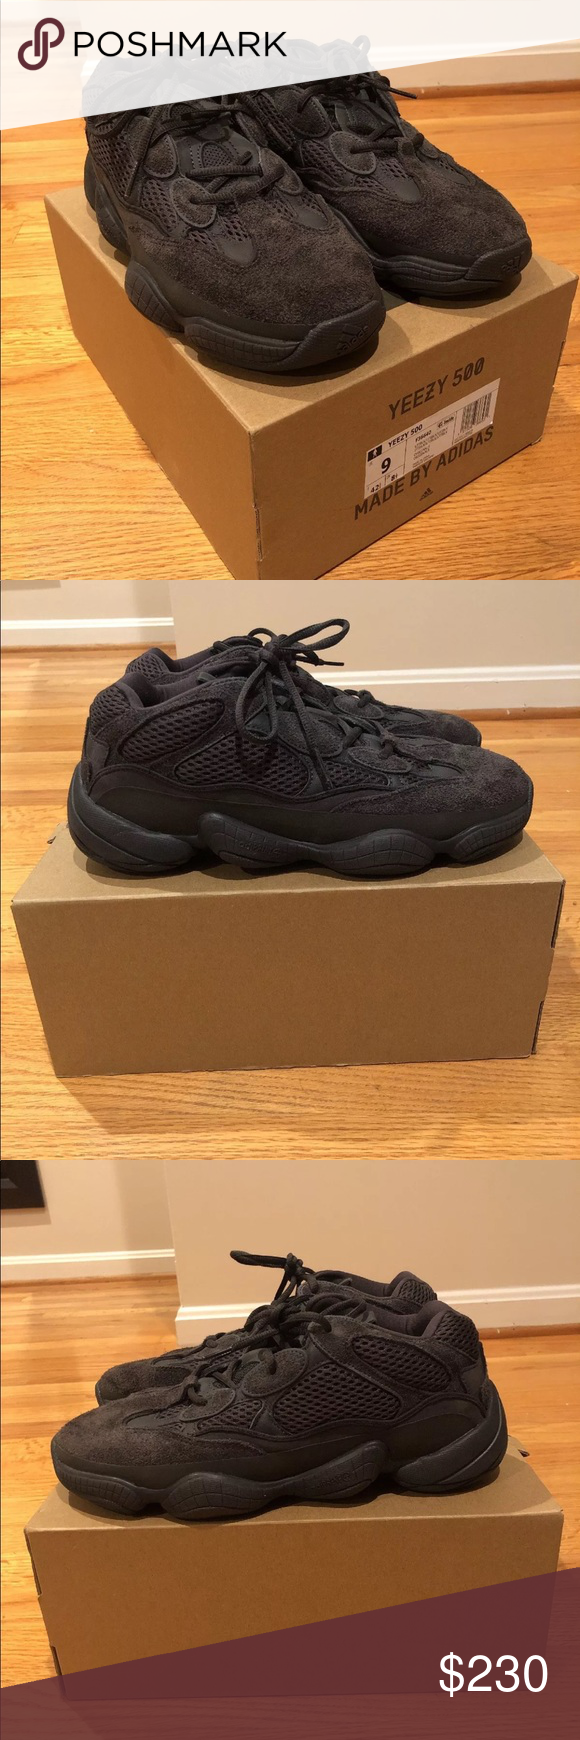 3c1336f39390a Adidas Yeezy Boost 500 Selling price starting at  230